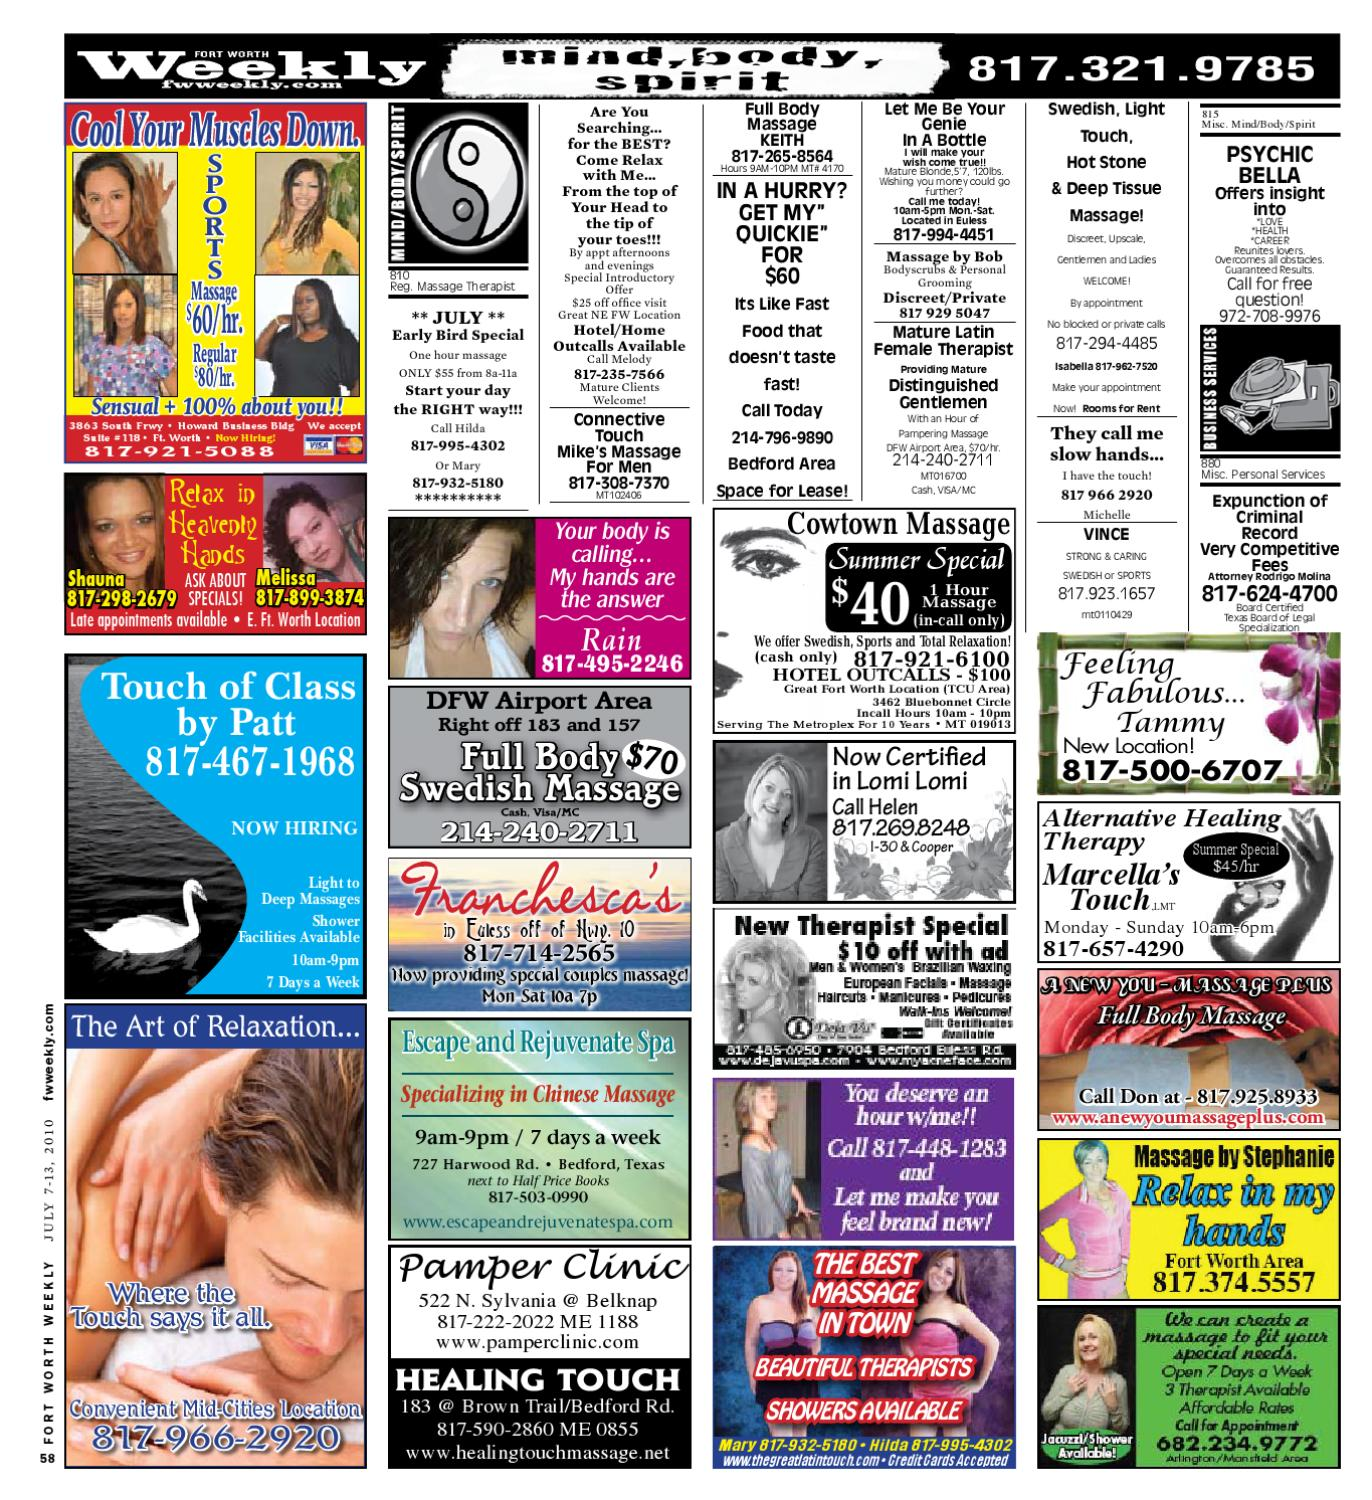 Fort worth weekly personals